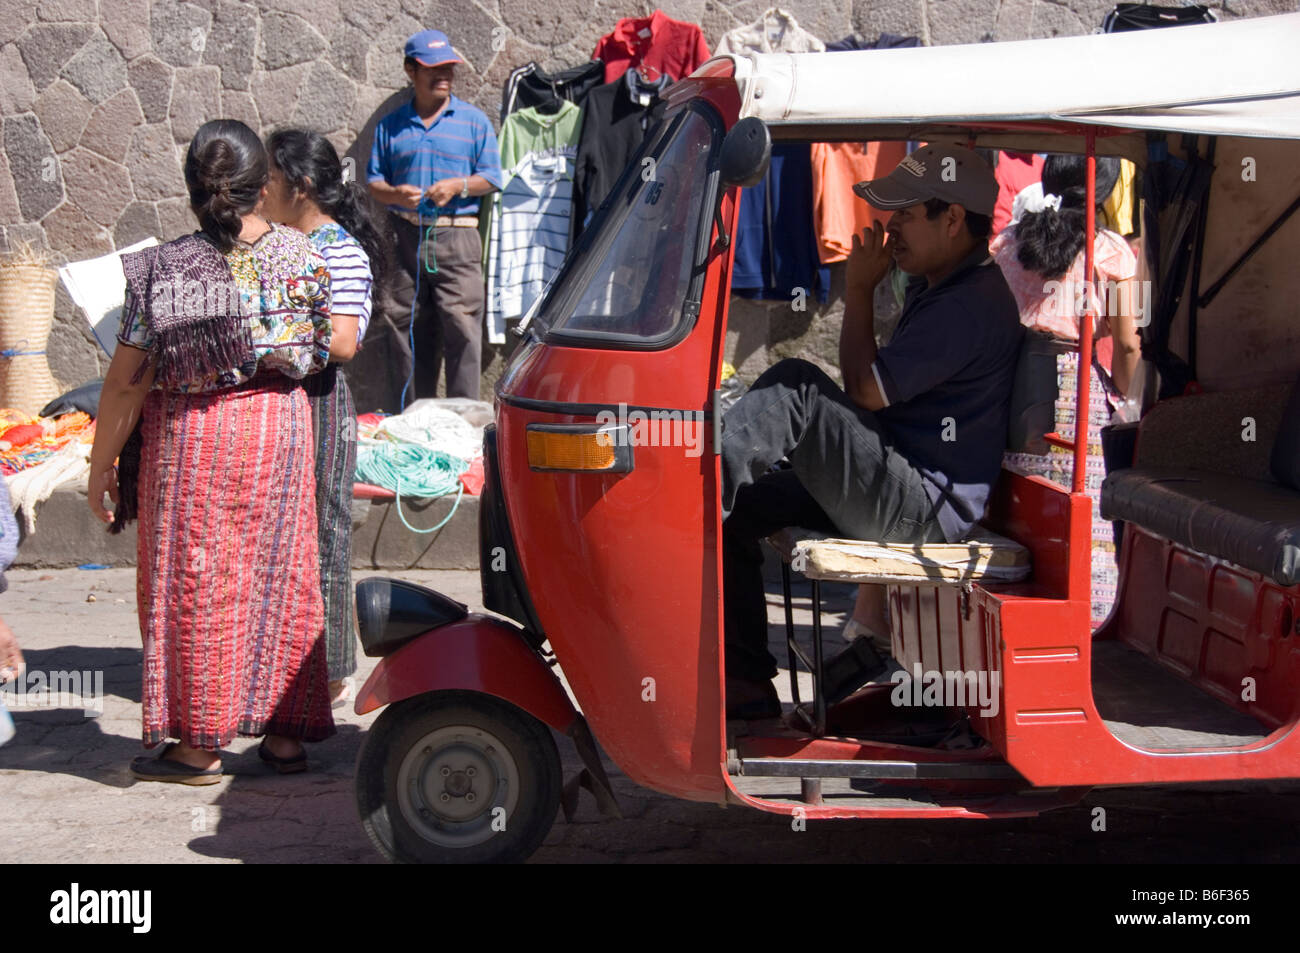 A red tuctuc waiting for customers on the market of Santiago Atitlan, Guatemala. - Stock Image